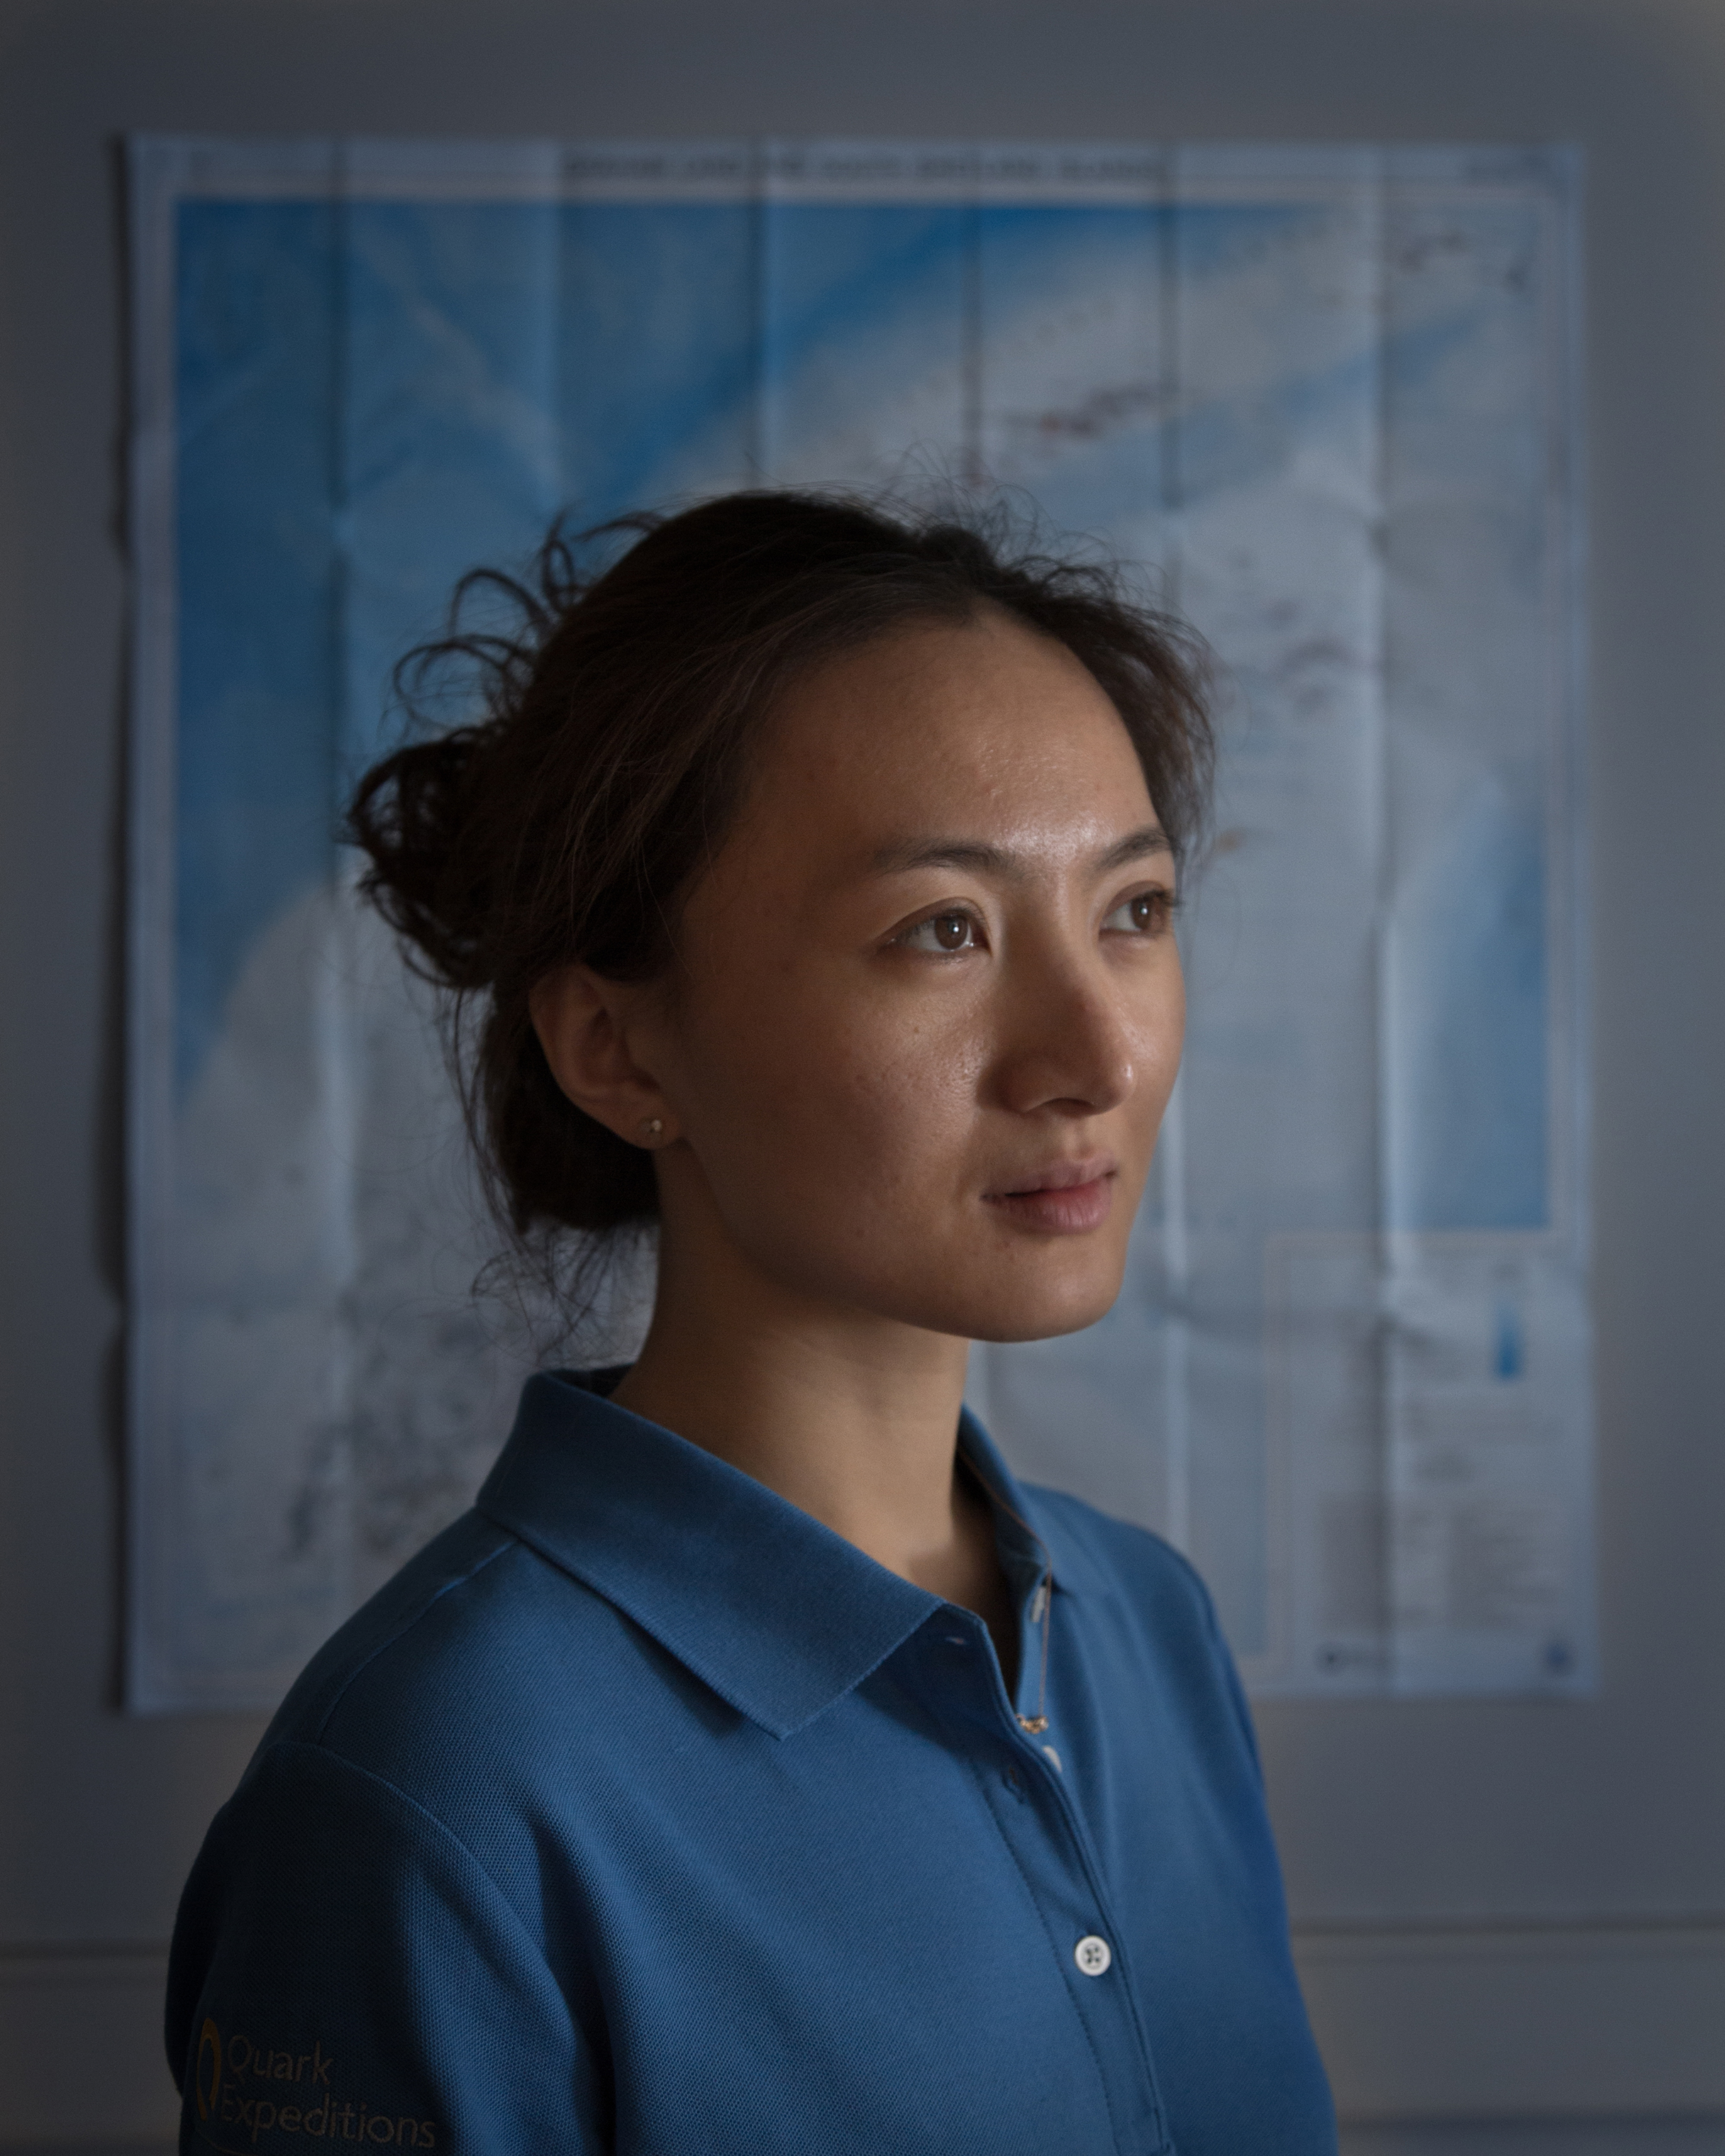 Jiayi Zhao, an actress and dancer from Beijing, works as a Mandarin translator and expedition guide. She has guided extensively at both poles